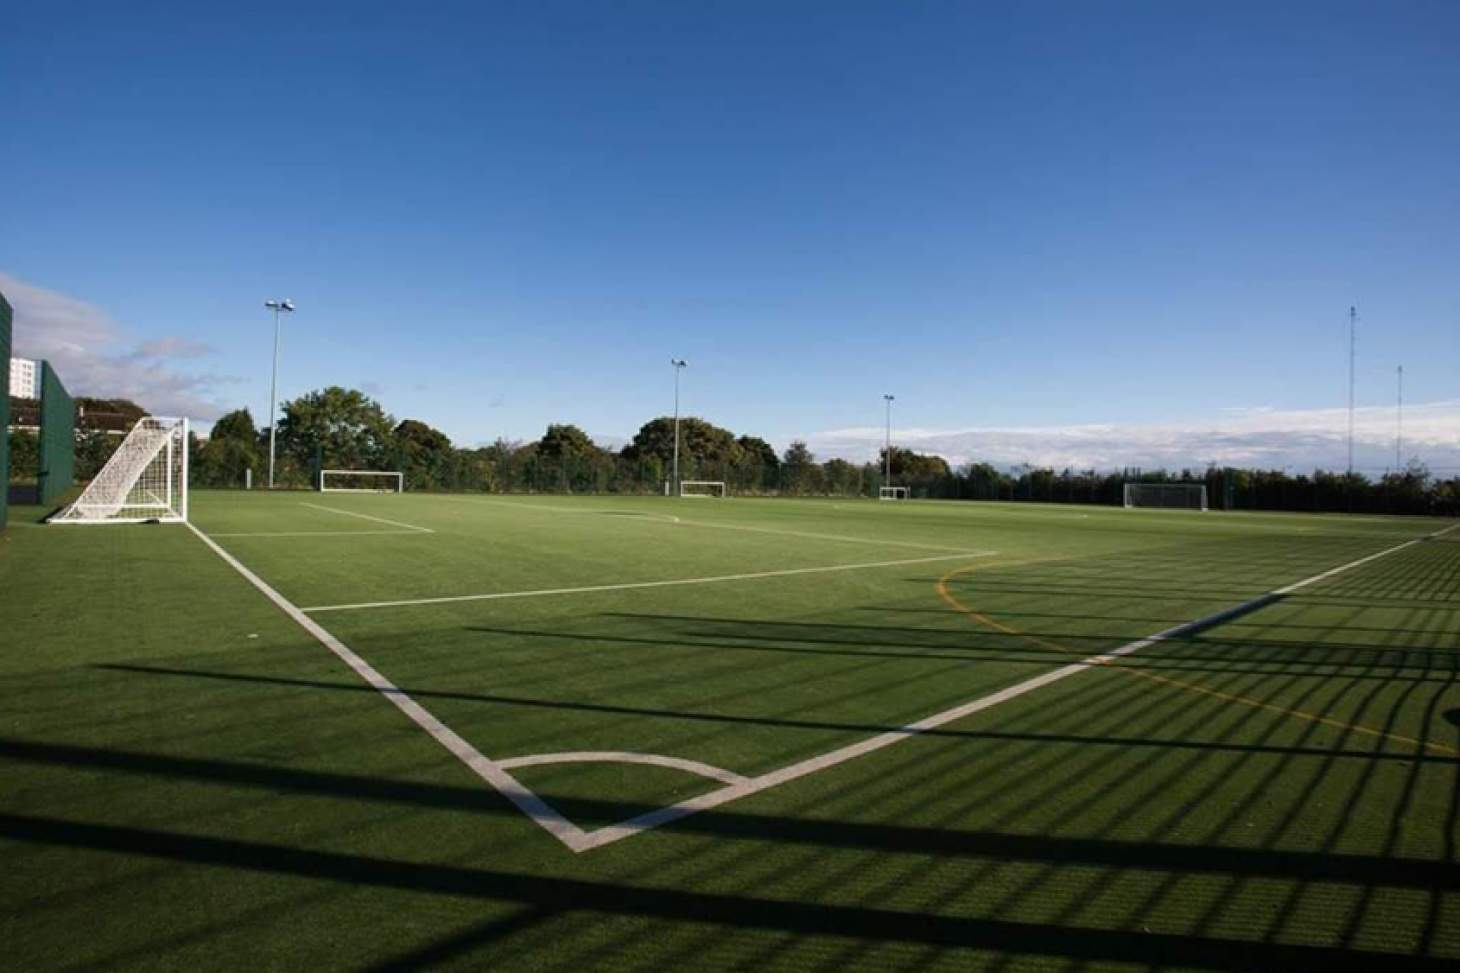 3D Health and Fitness Cardinal Hume 11 a side | Astroturf football pitch